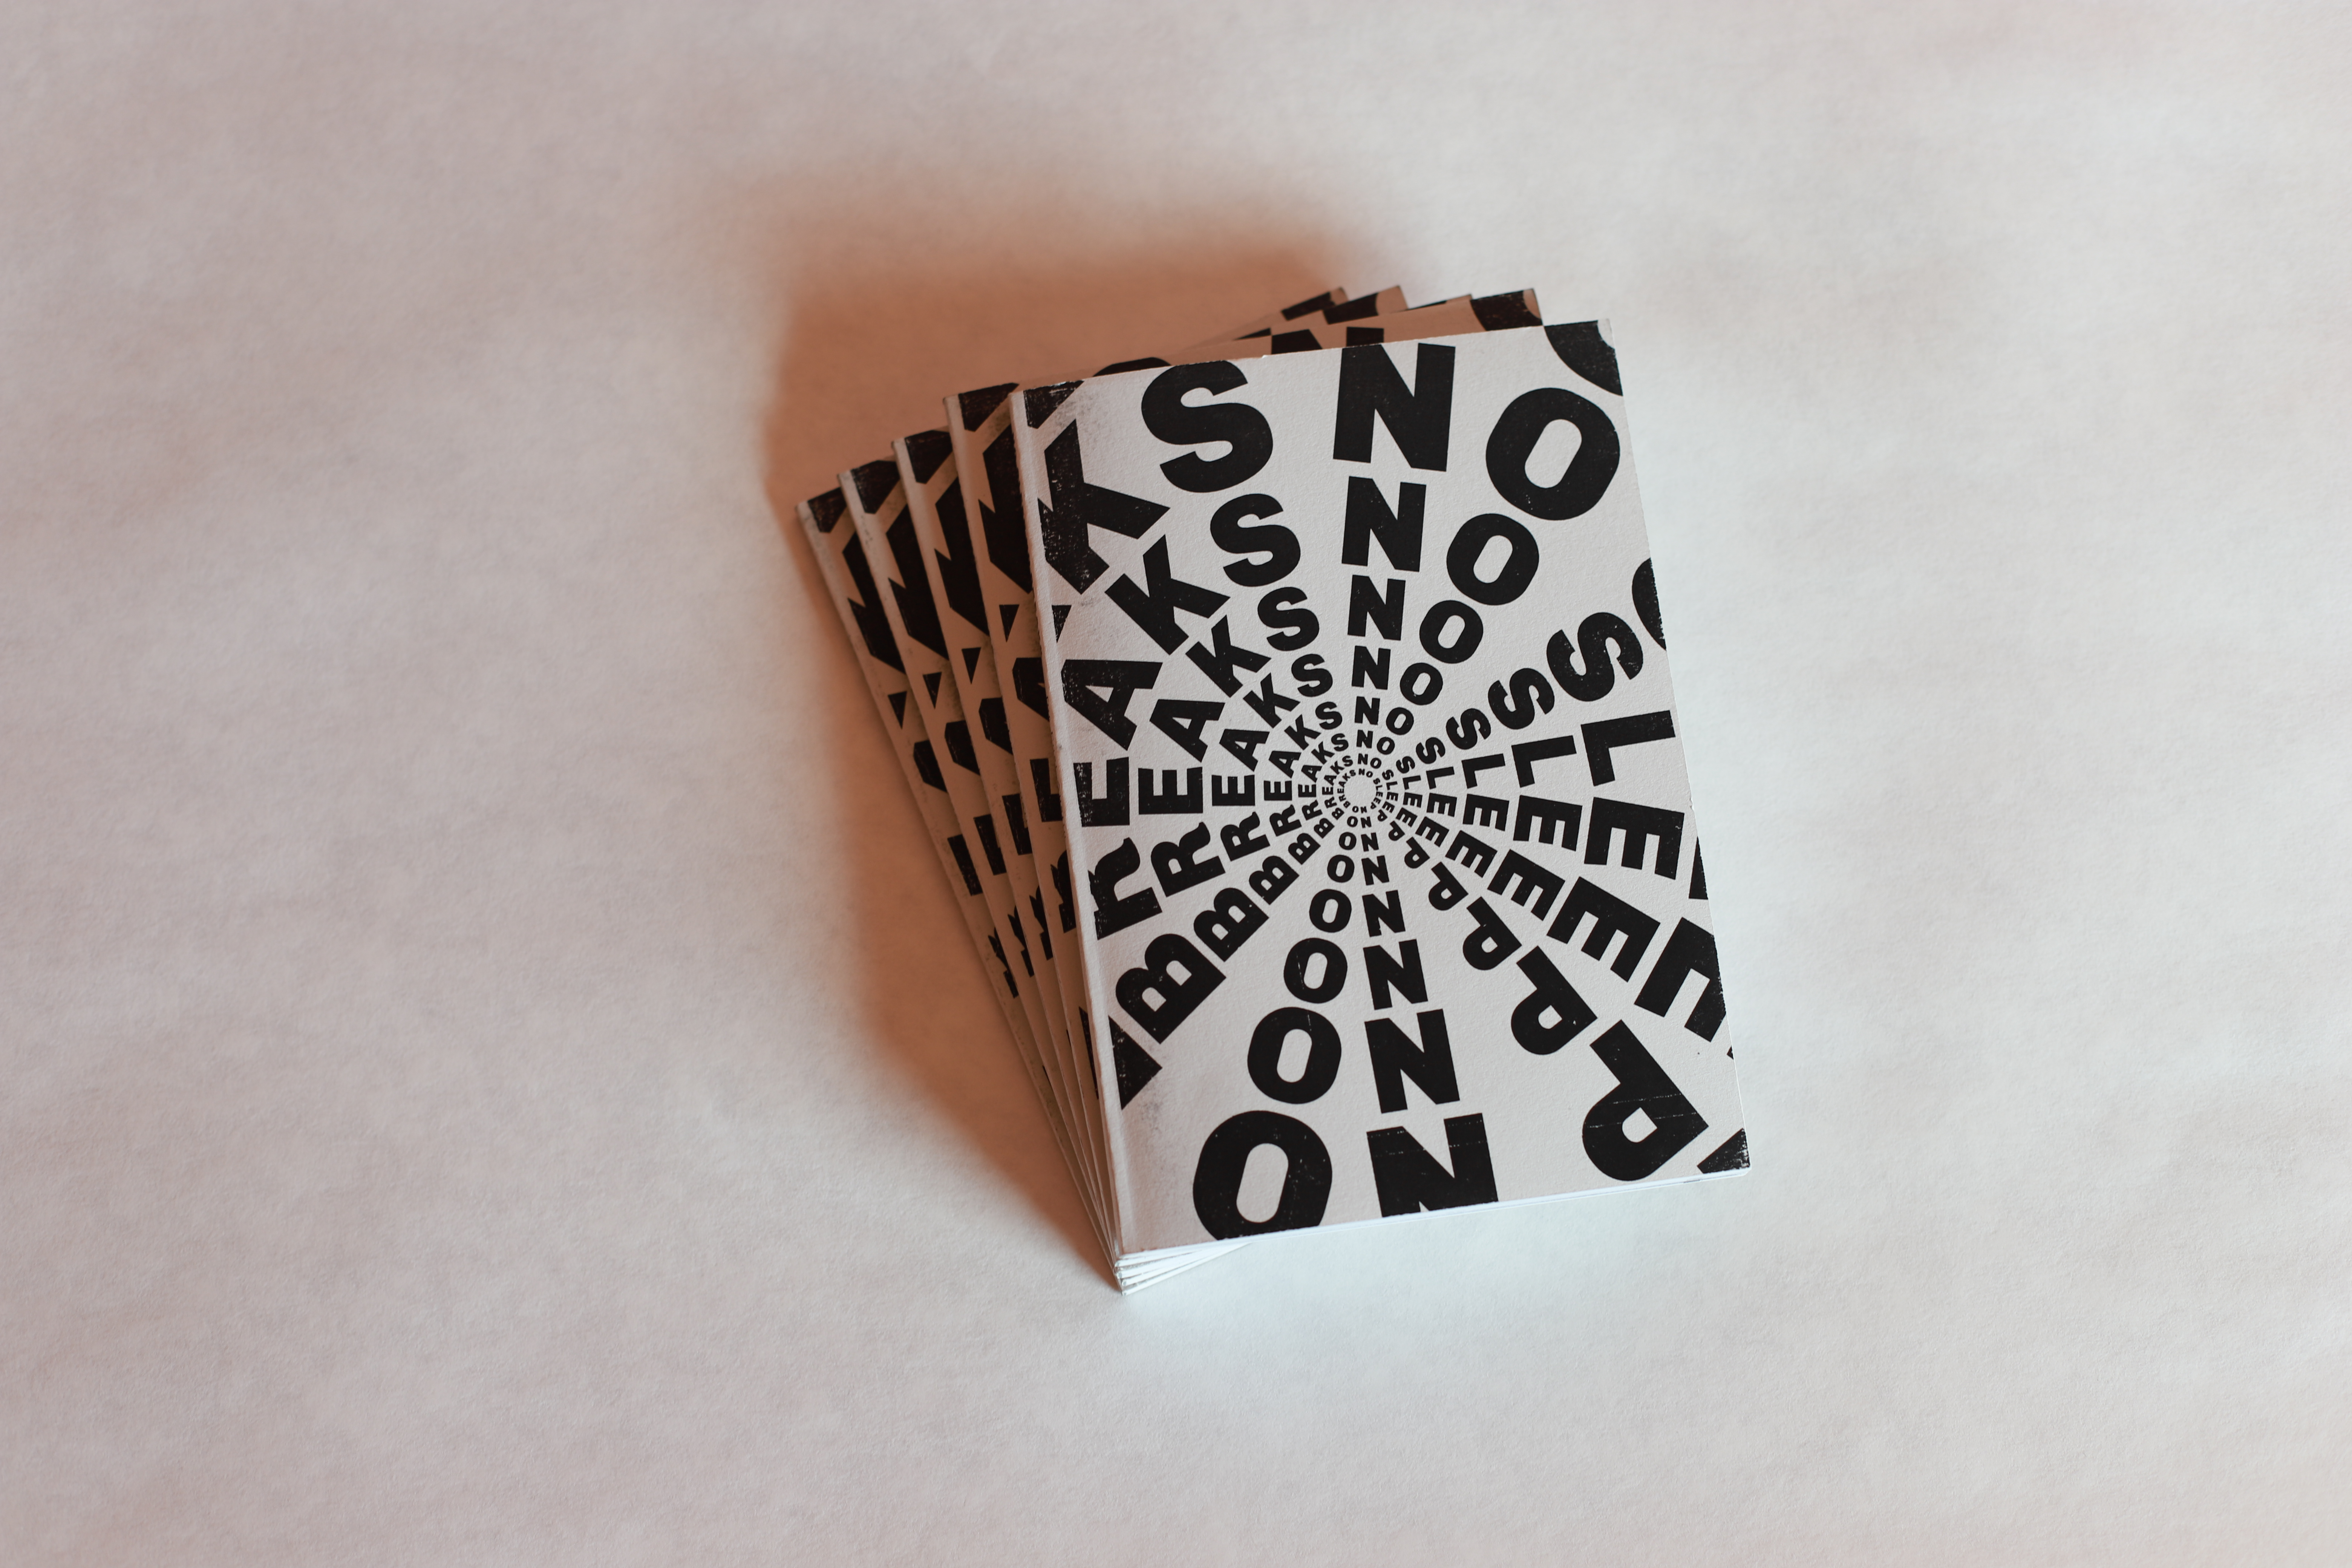 A small stack of NSNB zines.